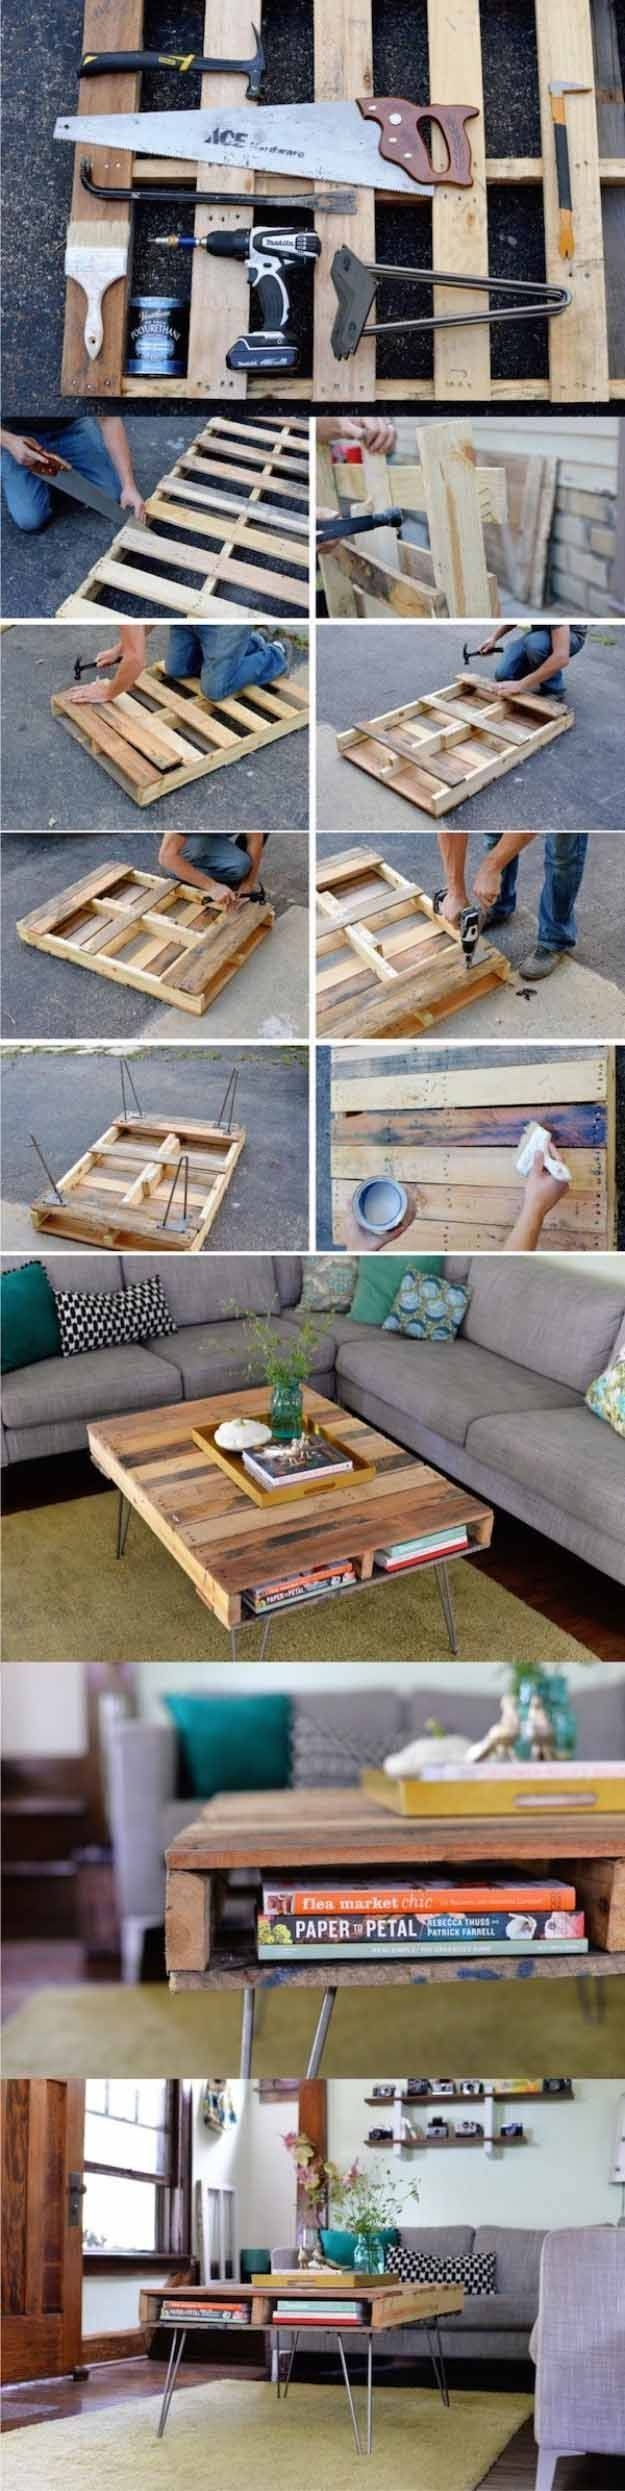 Best 20+ Cheap Coffee Tables Ideas On Pinterest | Cheap Coffee regarding Cheap Wood Coffee Tables (Image 3 of 30)